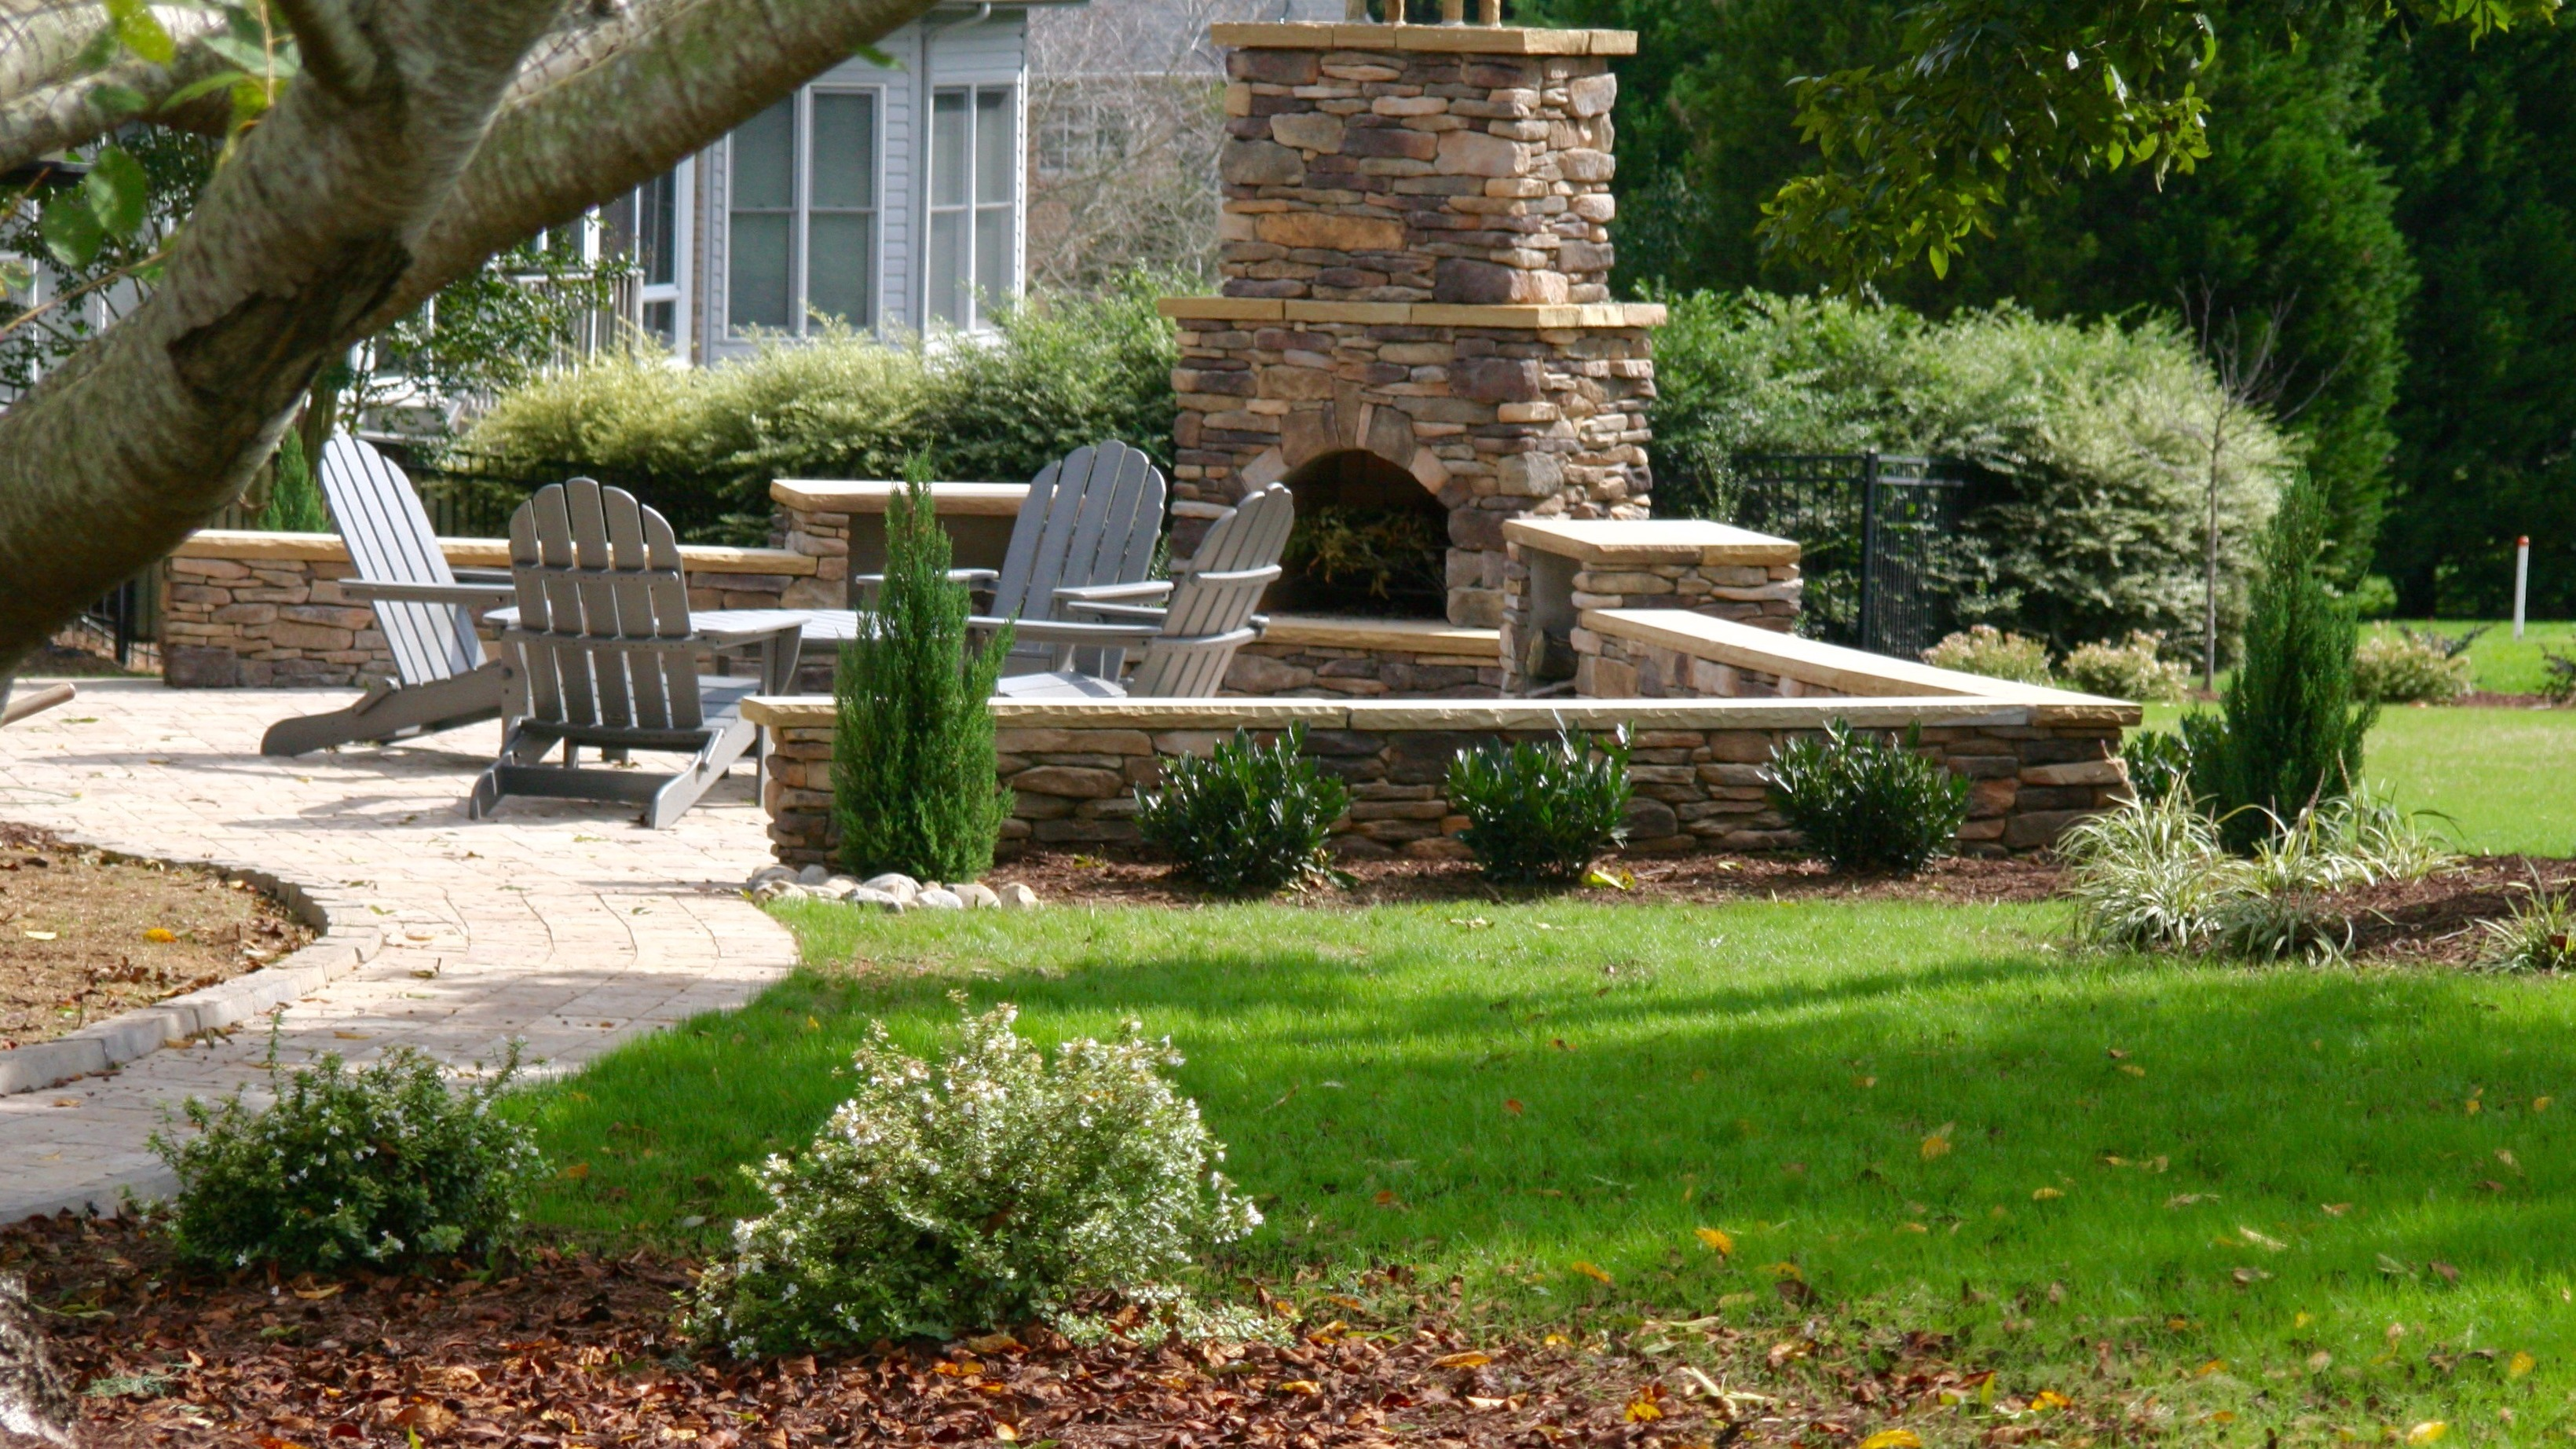 Top landscapers in charlotte nc - Top Landscapers In Charlotte Nc 15